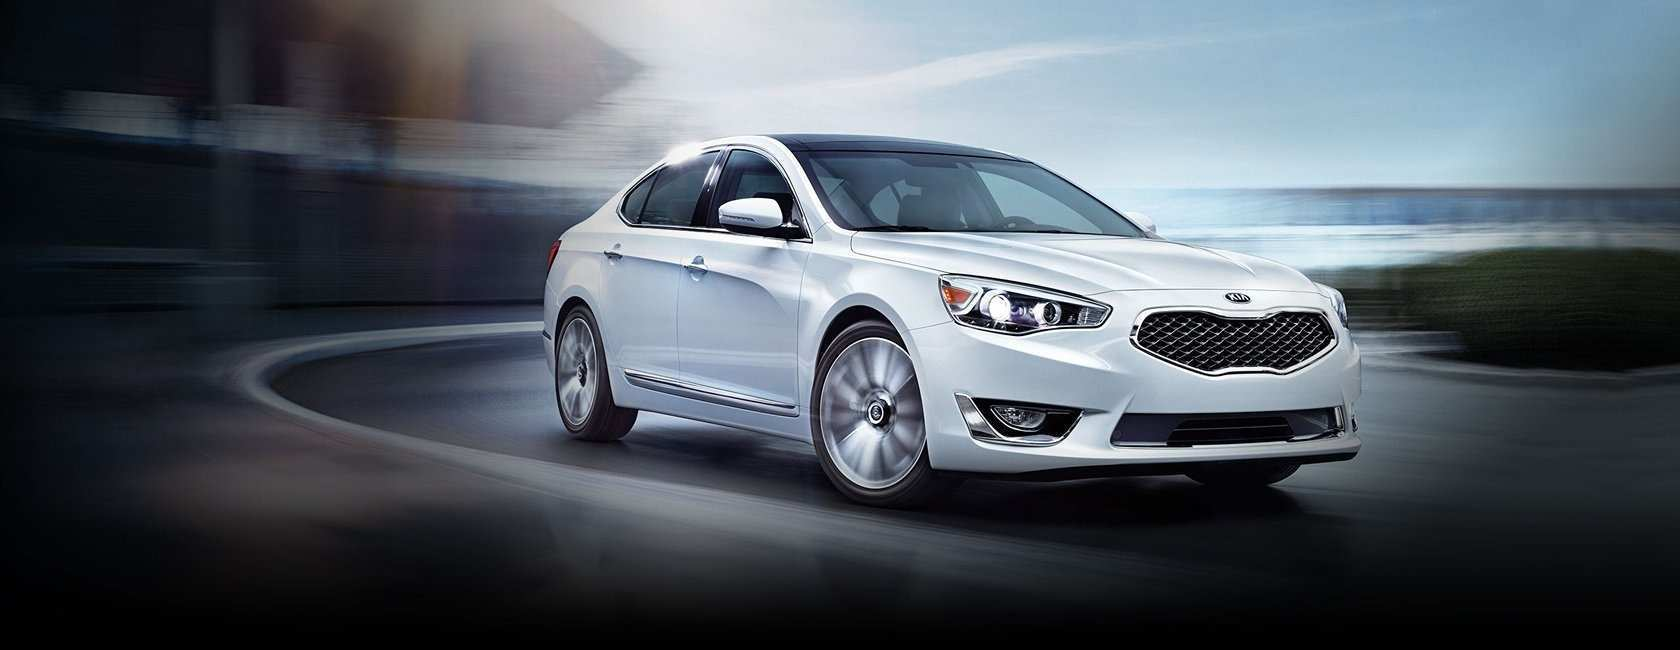 94 Best 2020 All Kia Cadenza Exterior And Interior